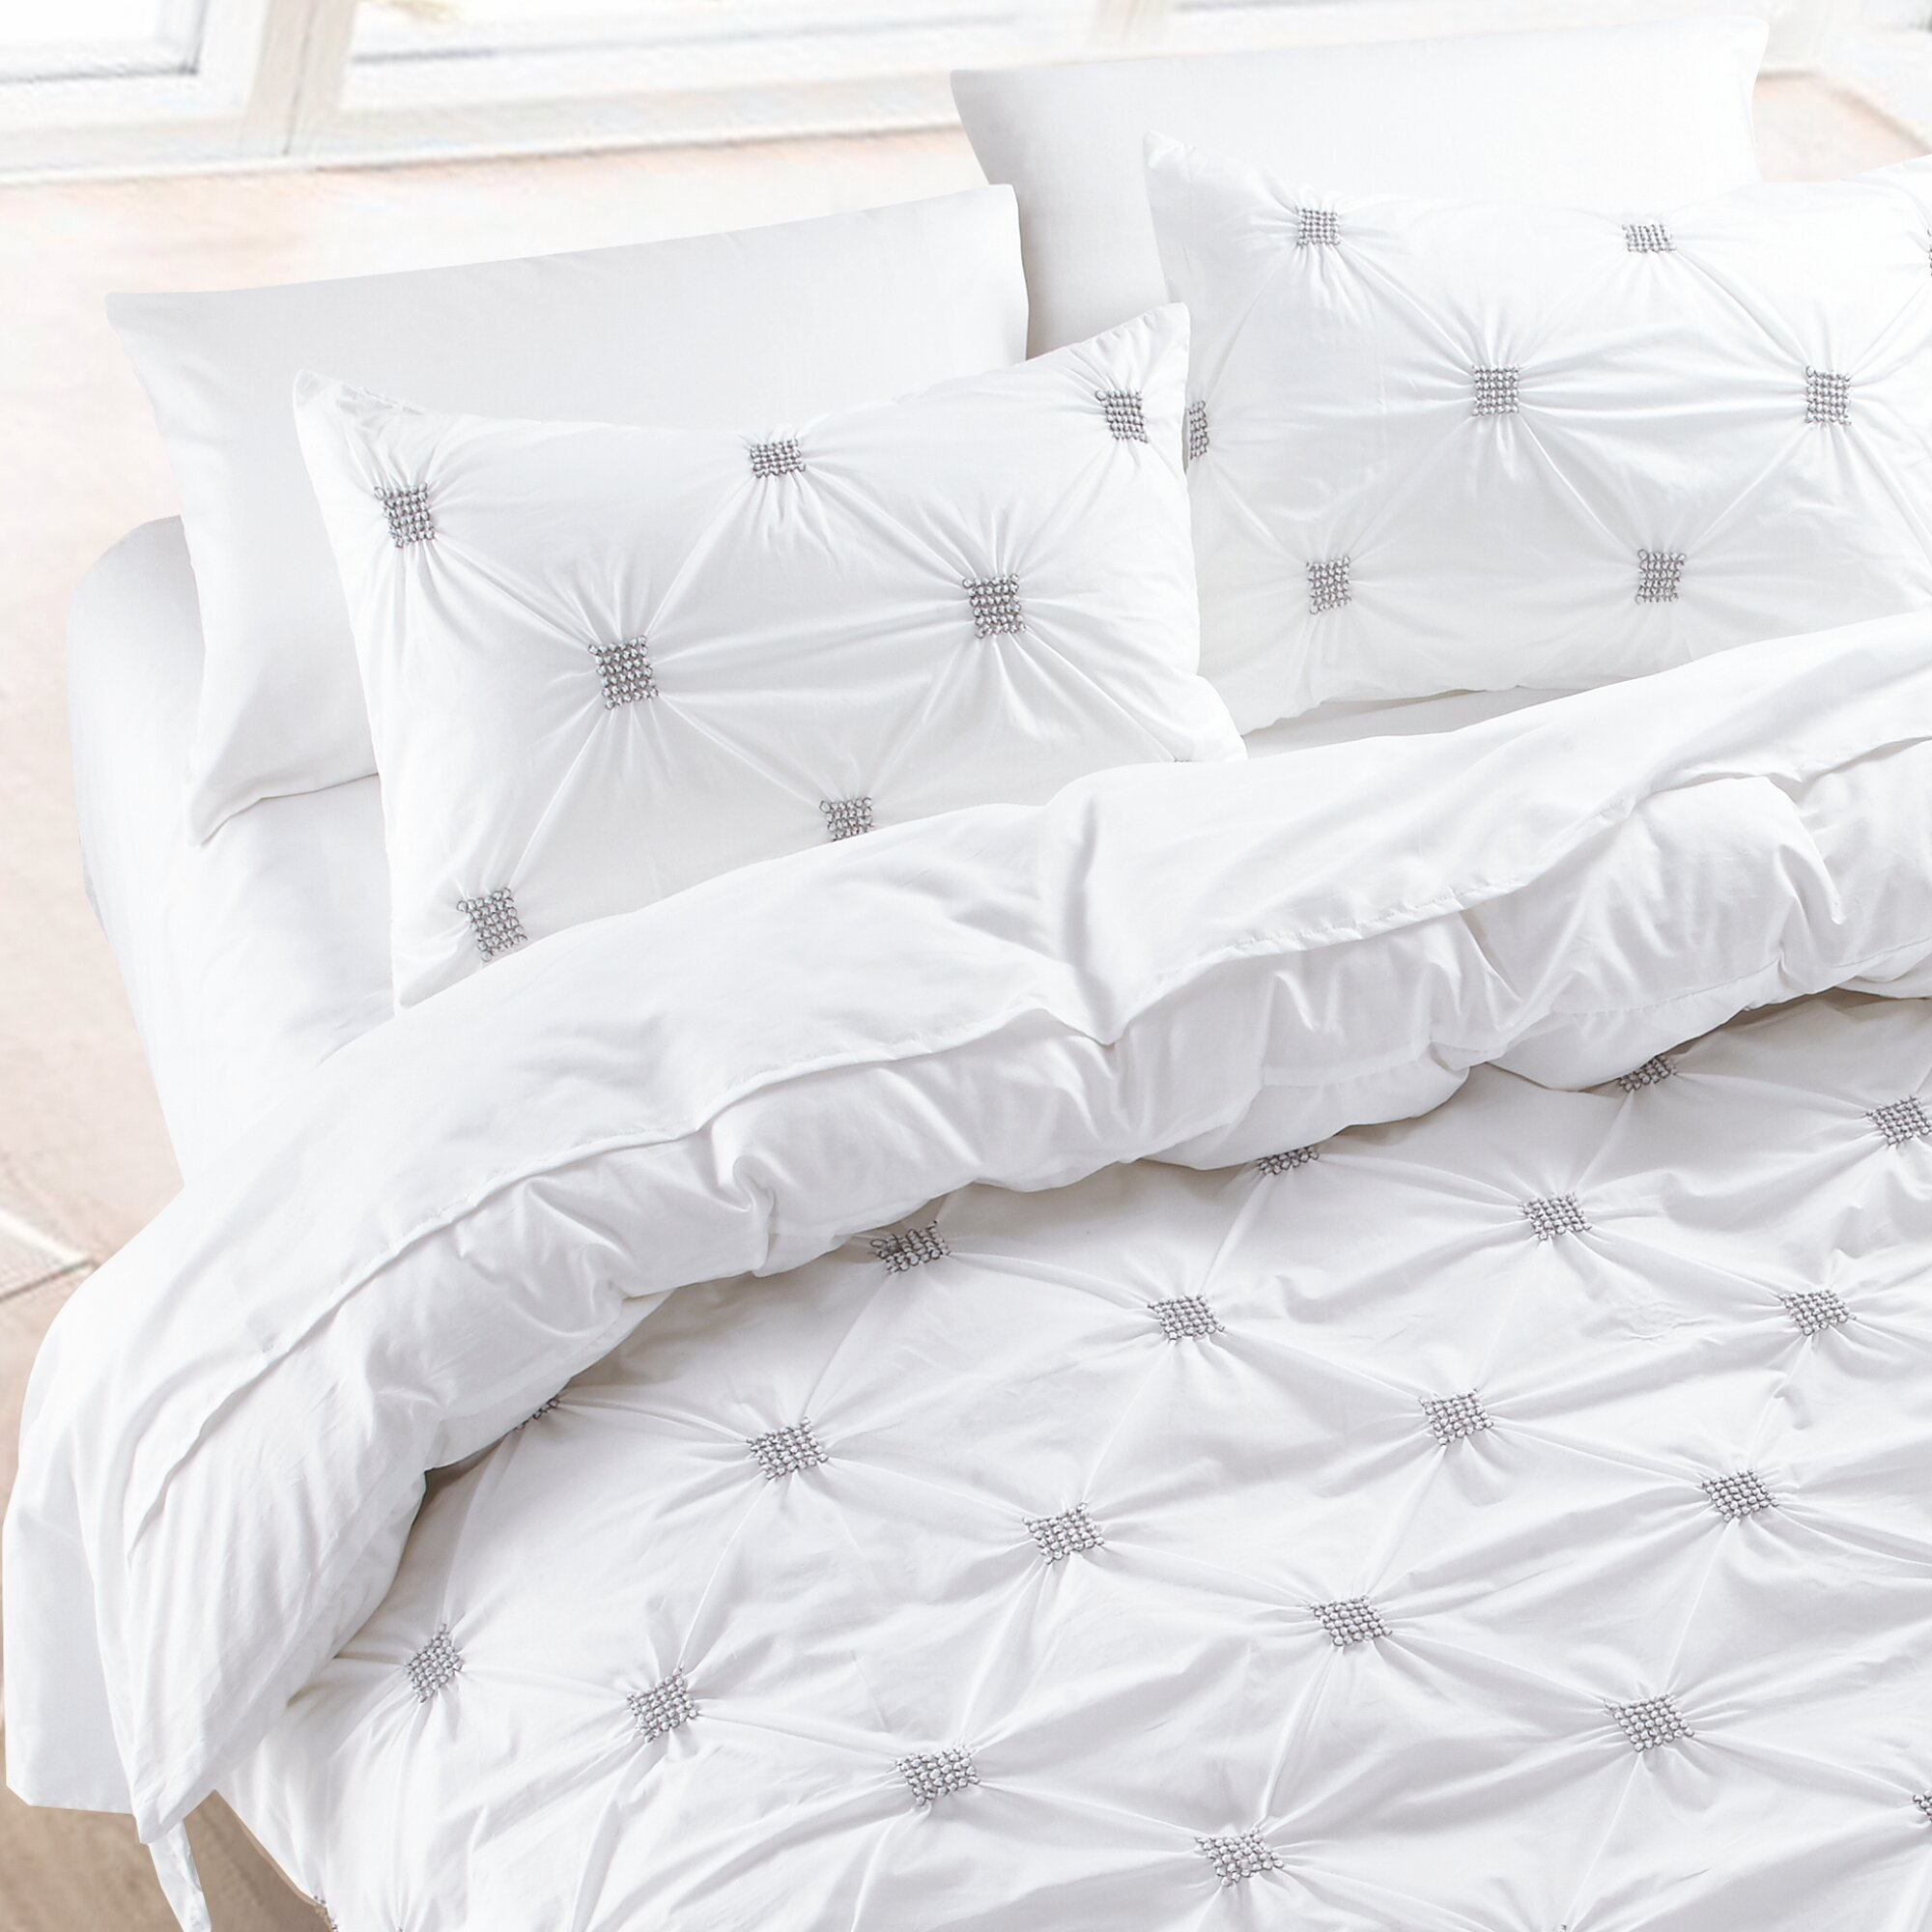 NMK Textiles, INC Diamond Pintuck 100% Cotton Duvet Cover Set u0026 Reviews |  Wayfair